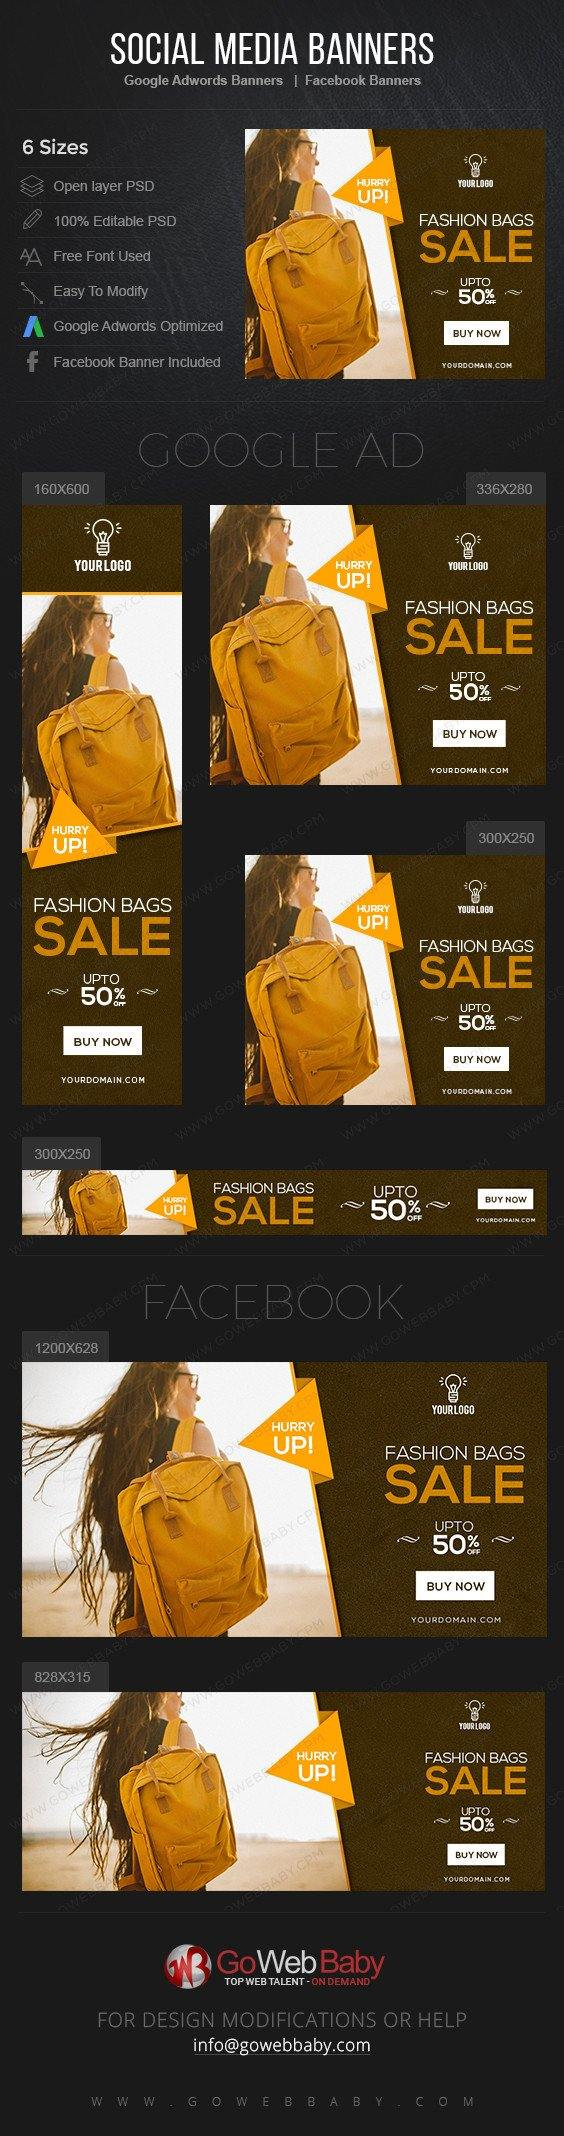 Google Adwords Display Banner With Facebook Banners - Fashion Bags For Website Marketing - GoWebBaby.Com